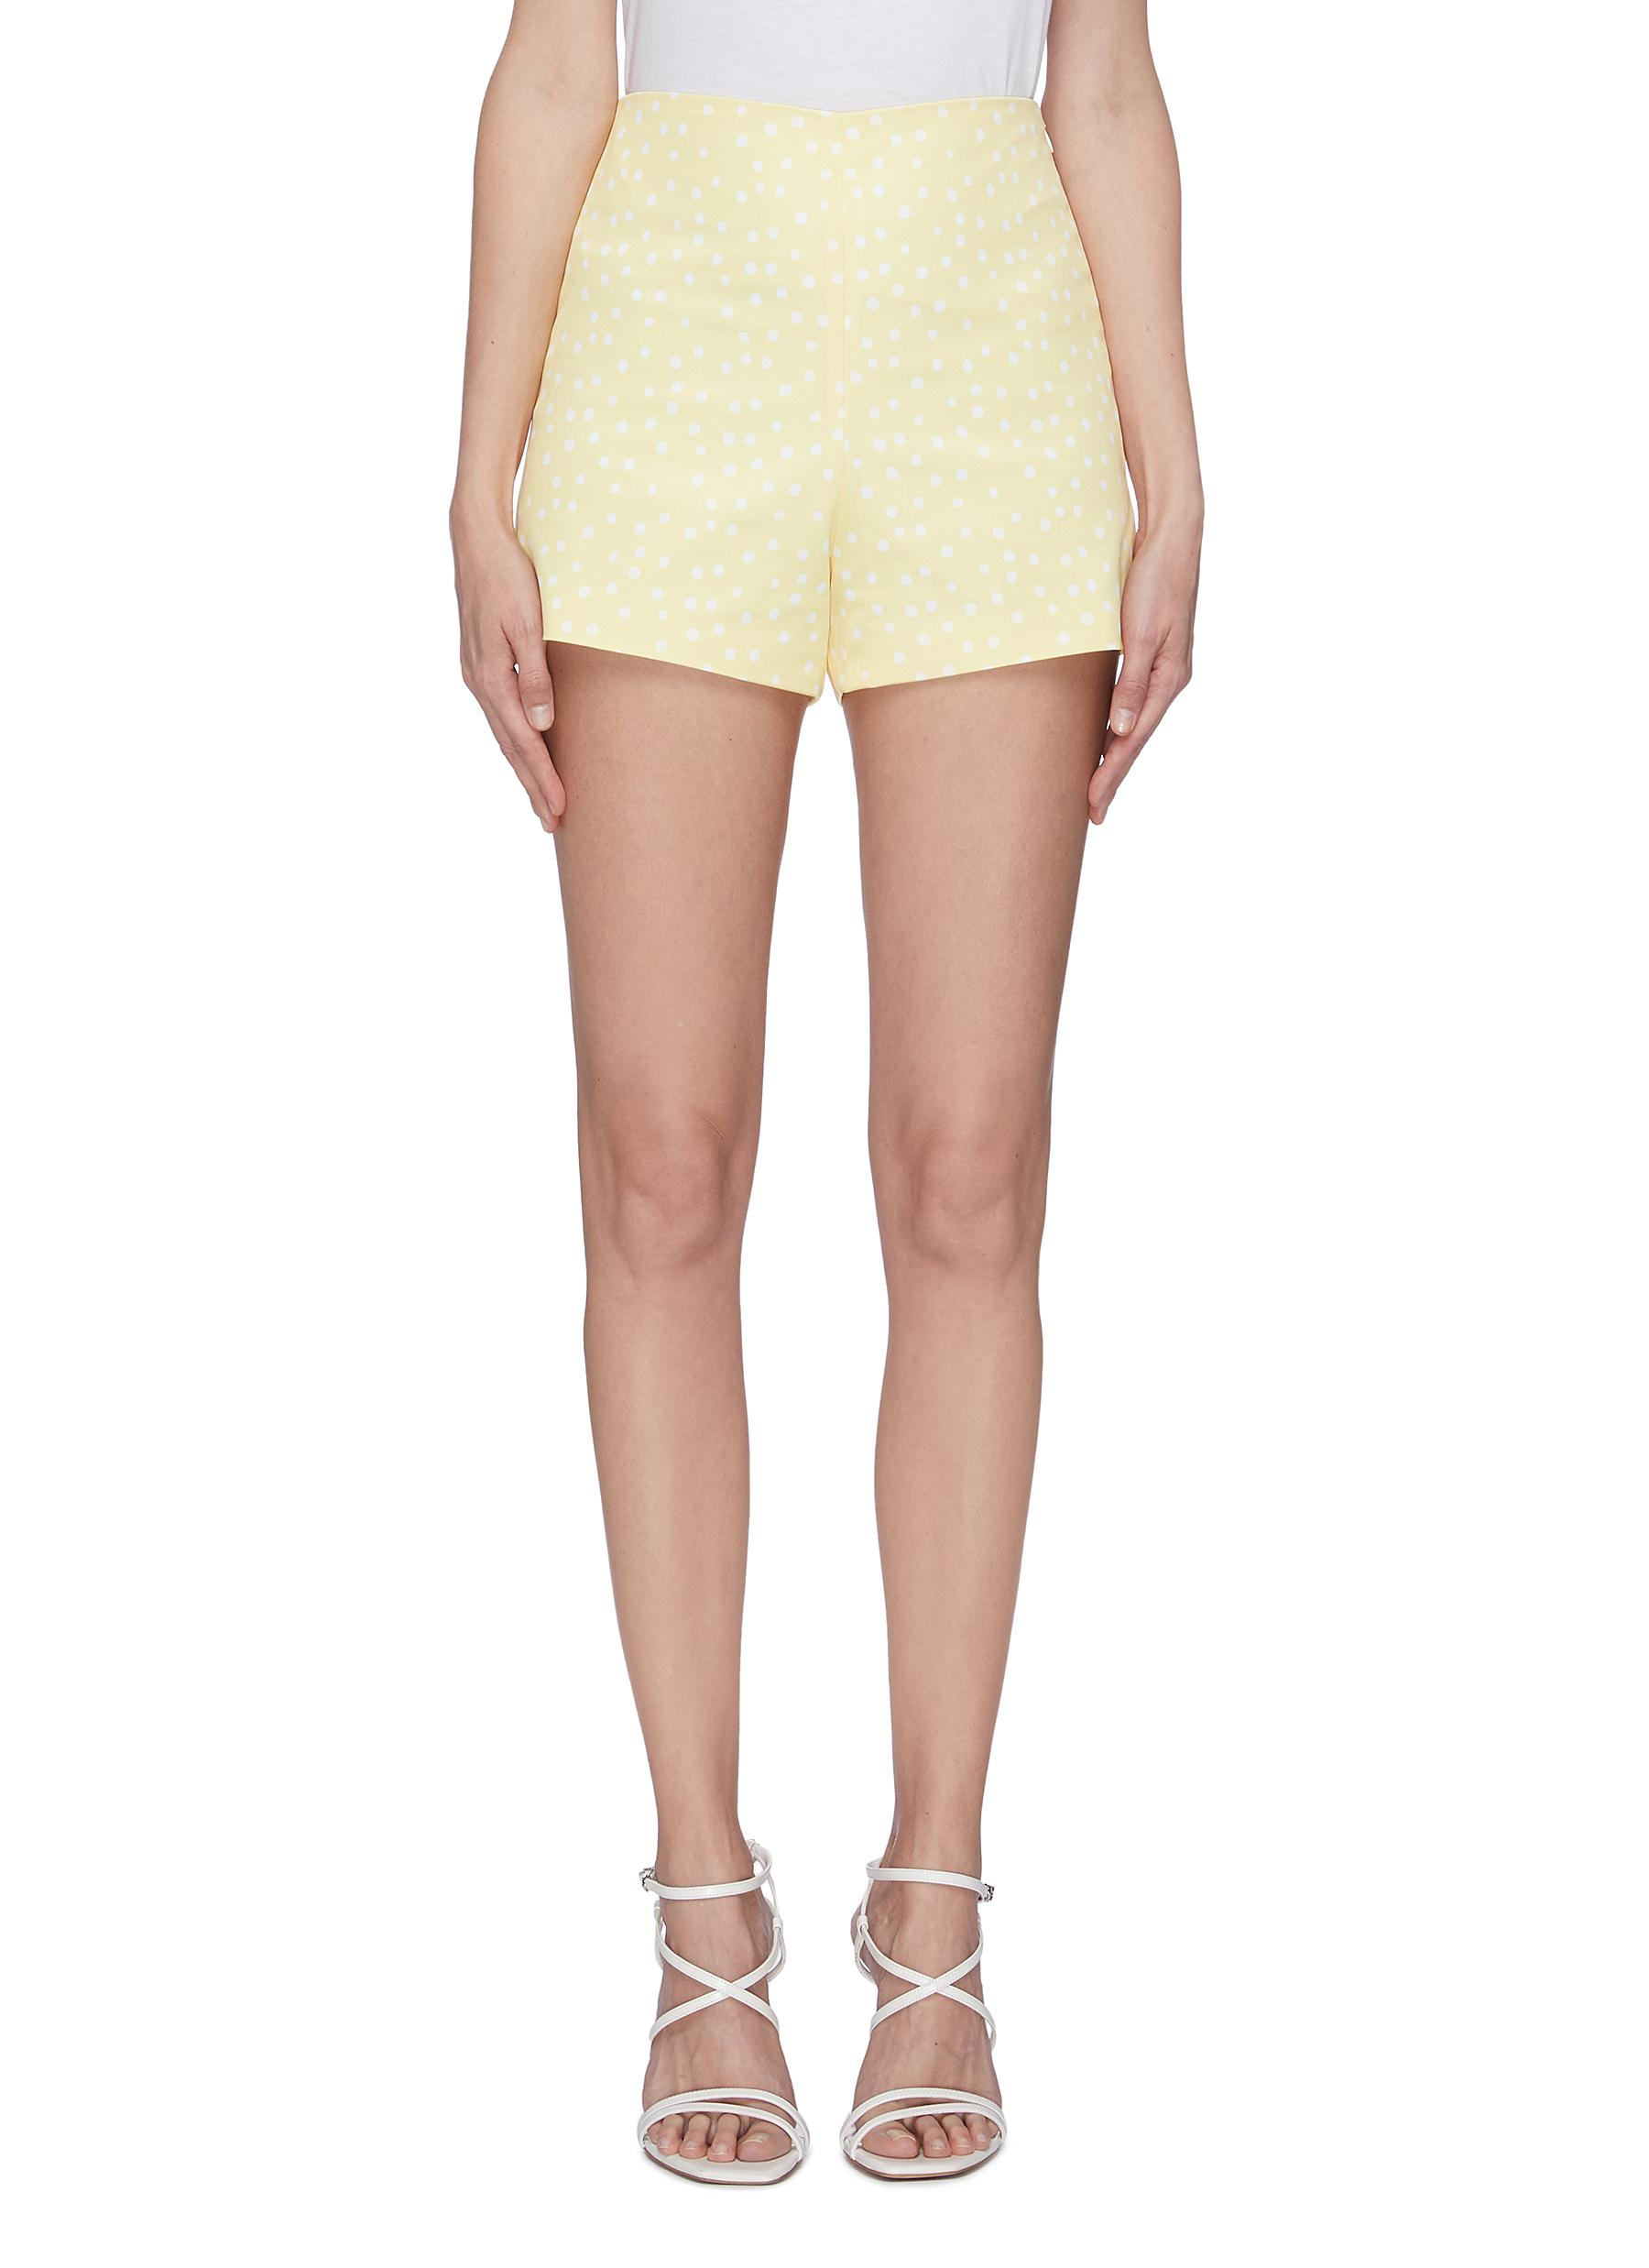 shop Leal Daccarett 'Golden' polka dot high rise shorts online